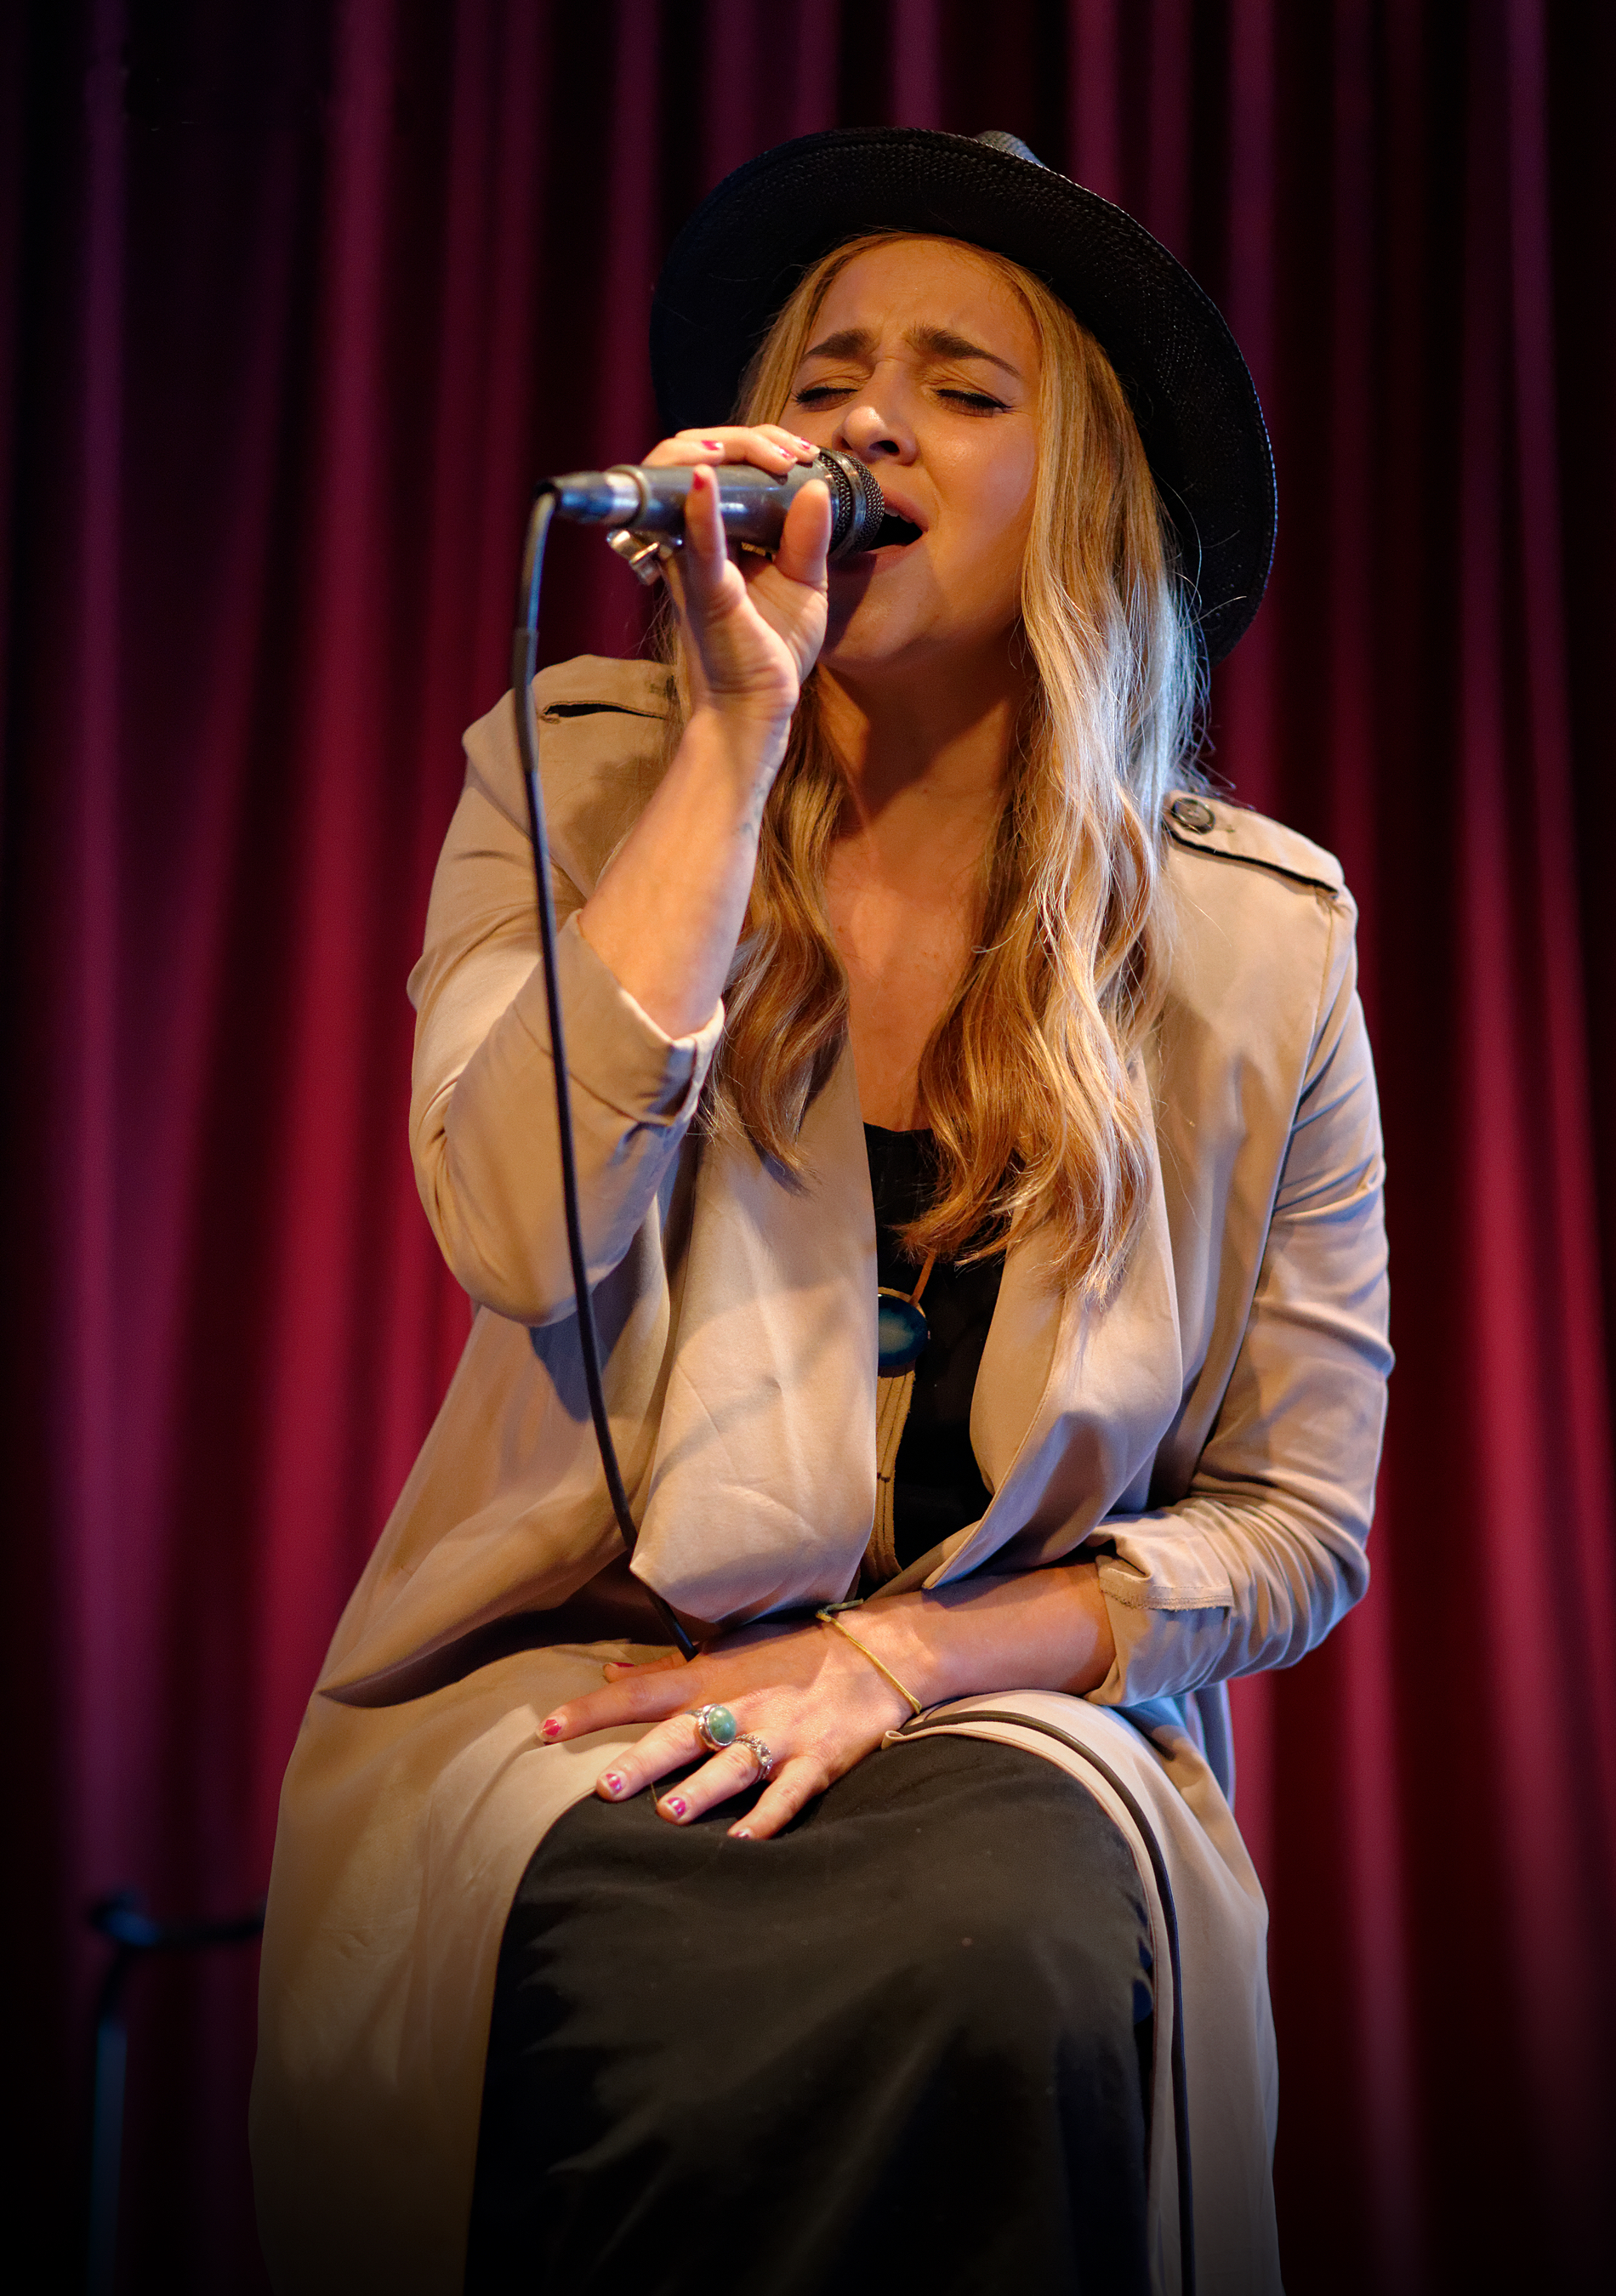 Alyssa Labelle Hot the voice (american season 10) - wikipedia